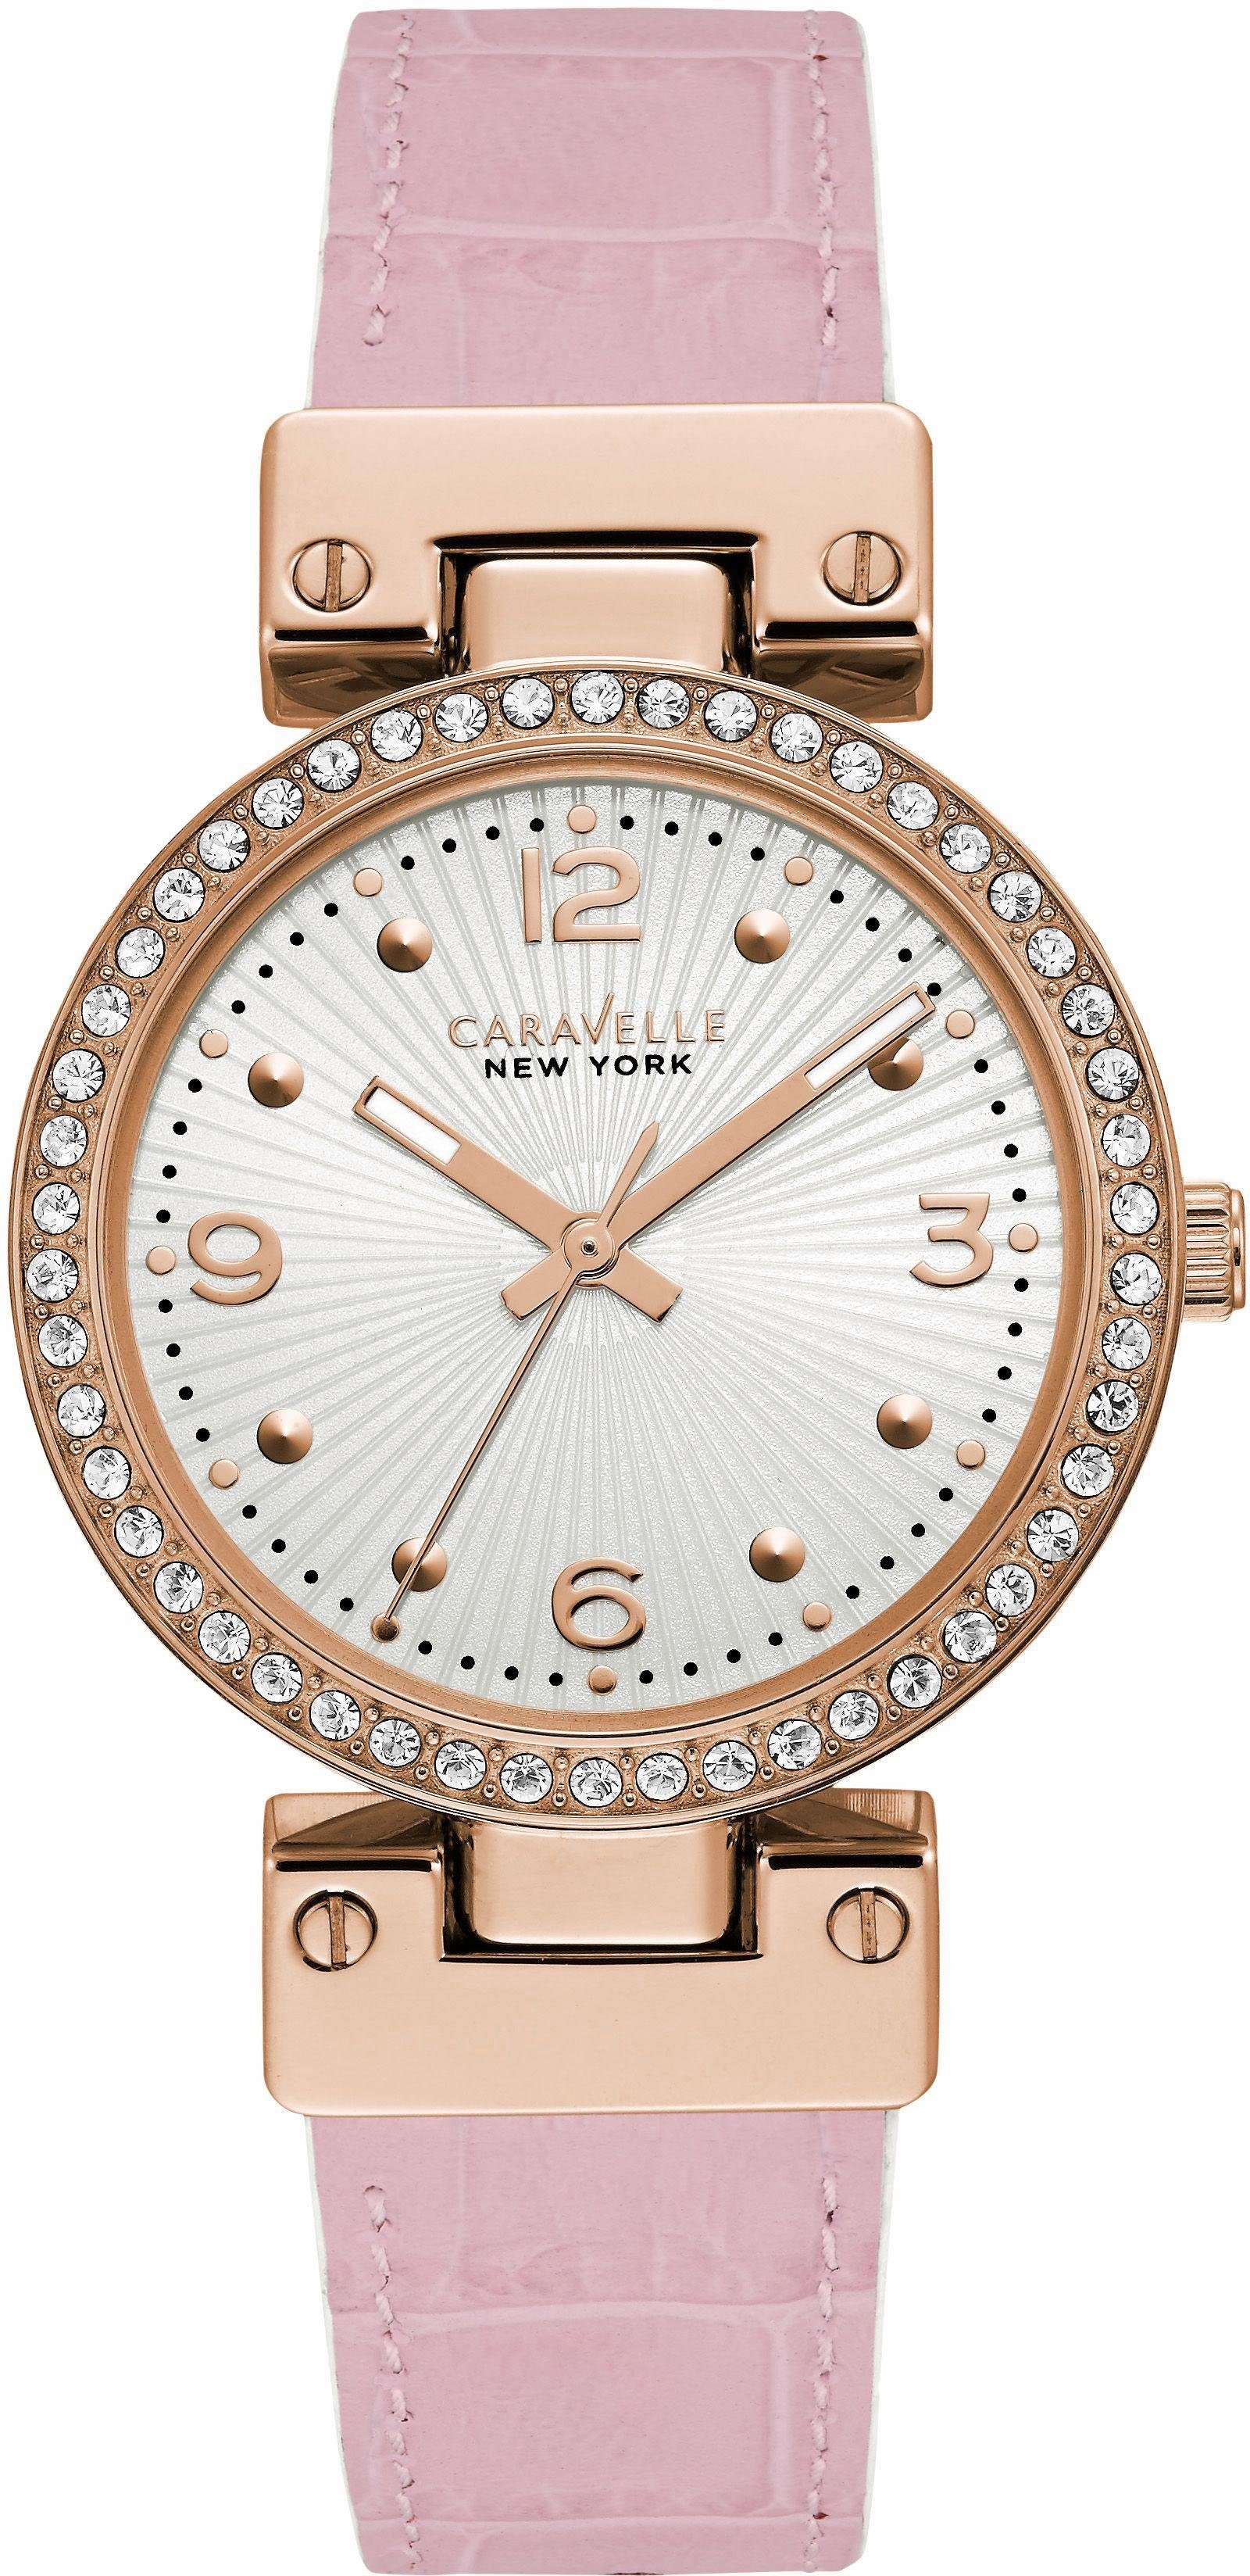 Caravelle New York Quarzuhr »Blushing Beauty, 44L232«, mit Wendeband